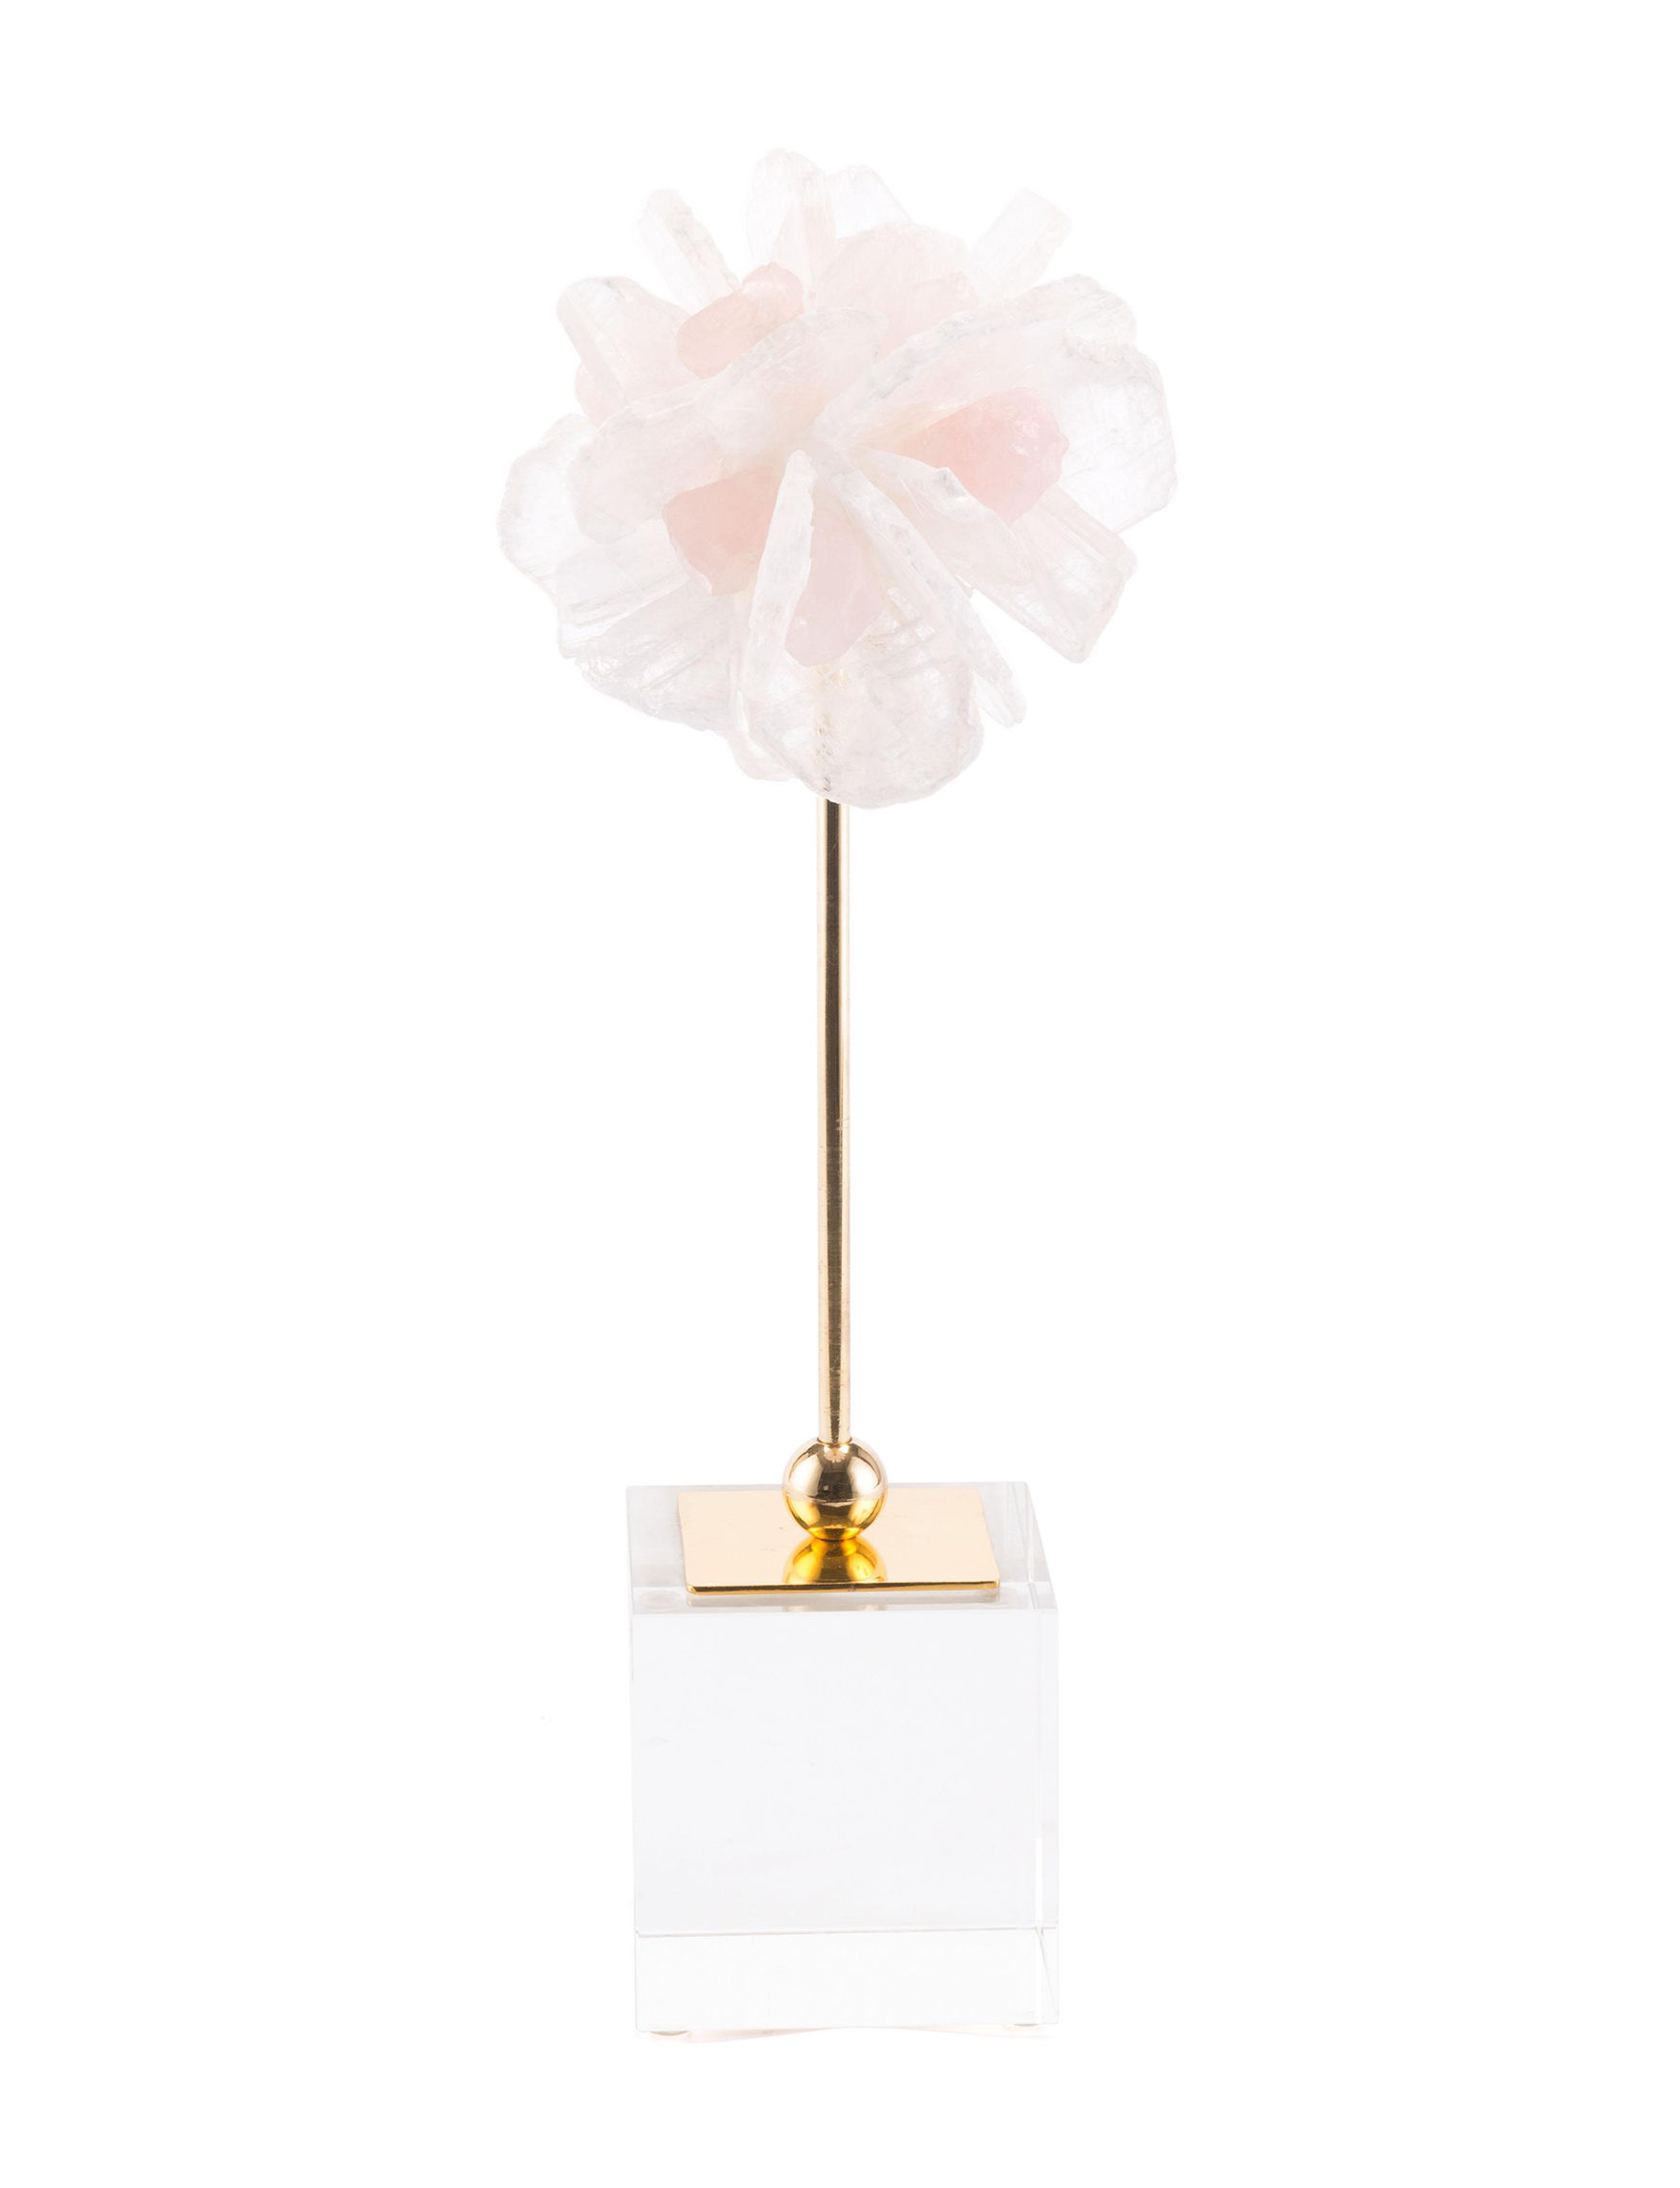 Zuo Modern Pink Decorative Objects Home Accents